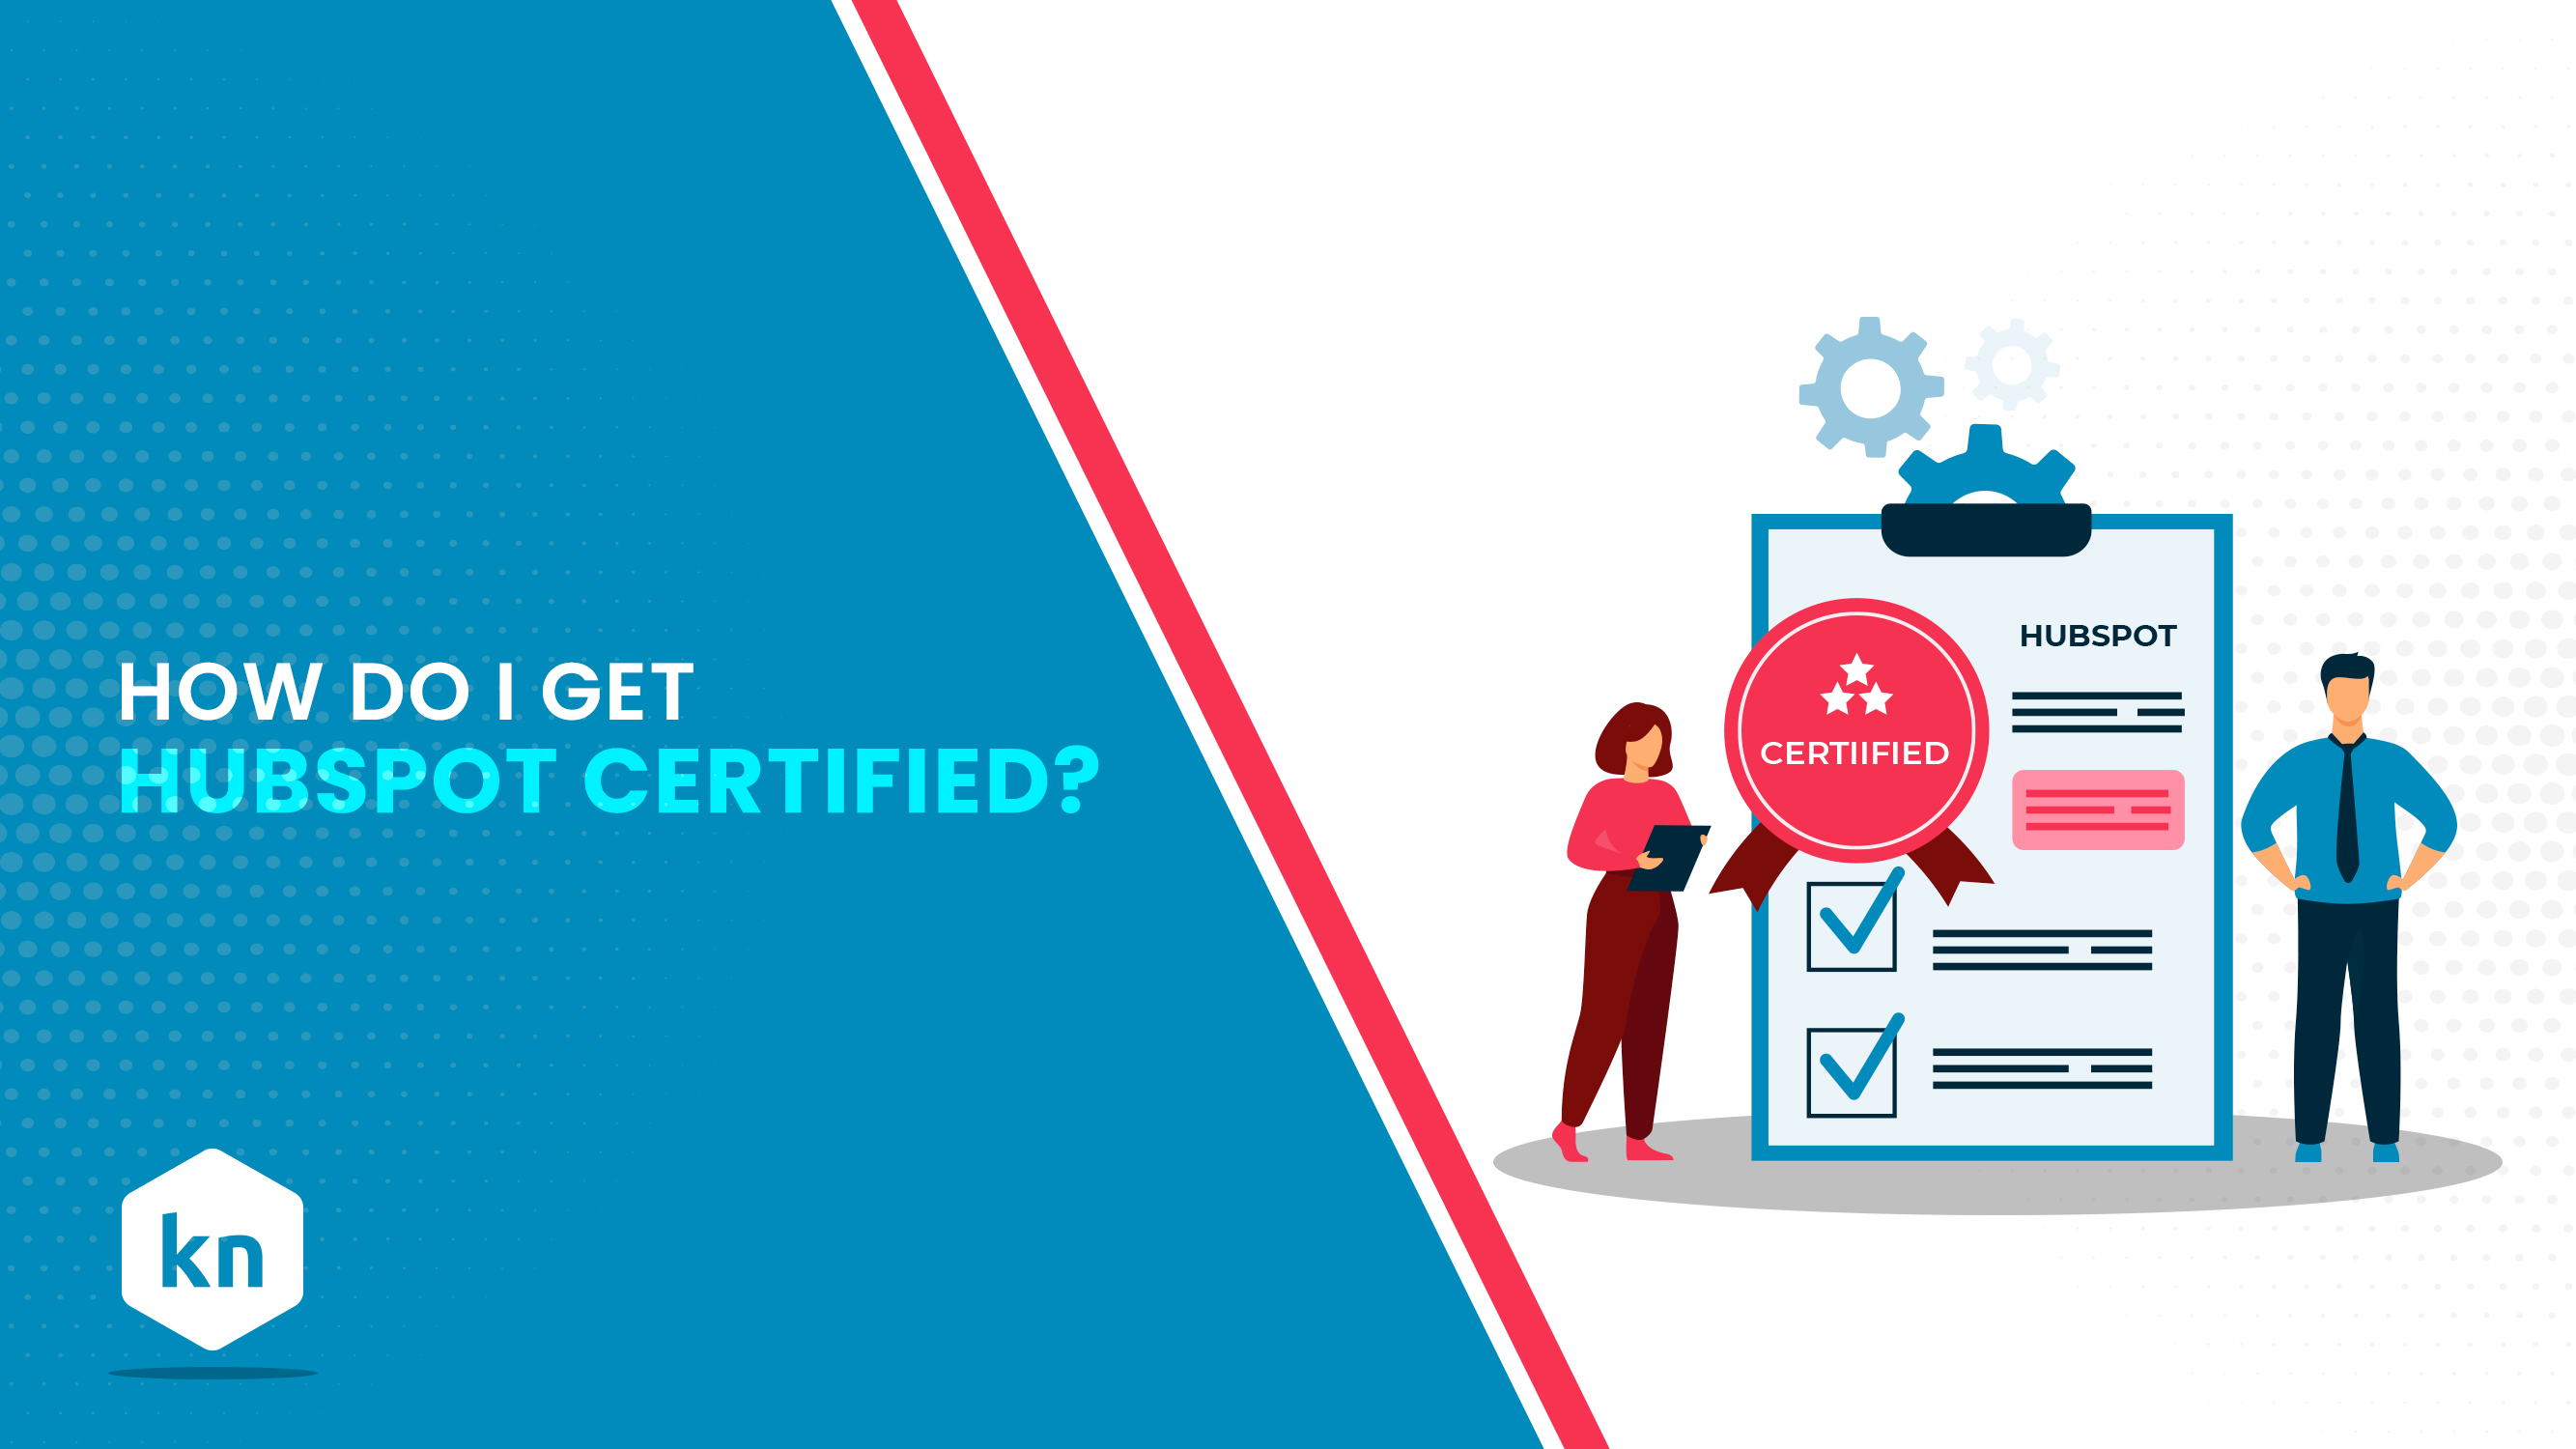 How Do I Get HubSpot Certified?